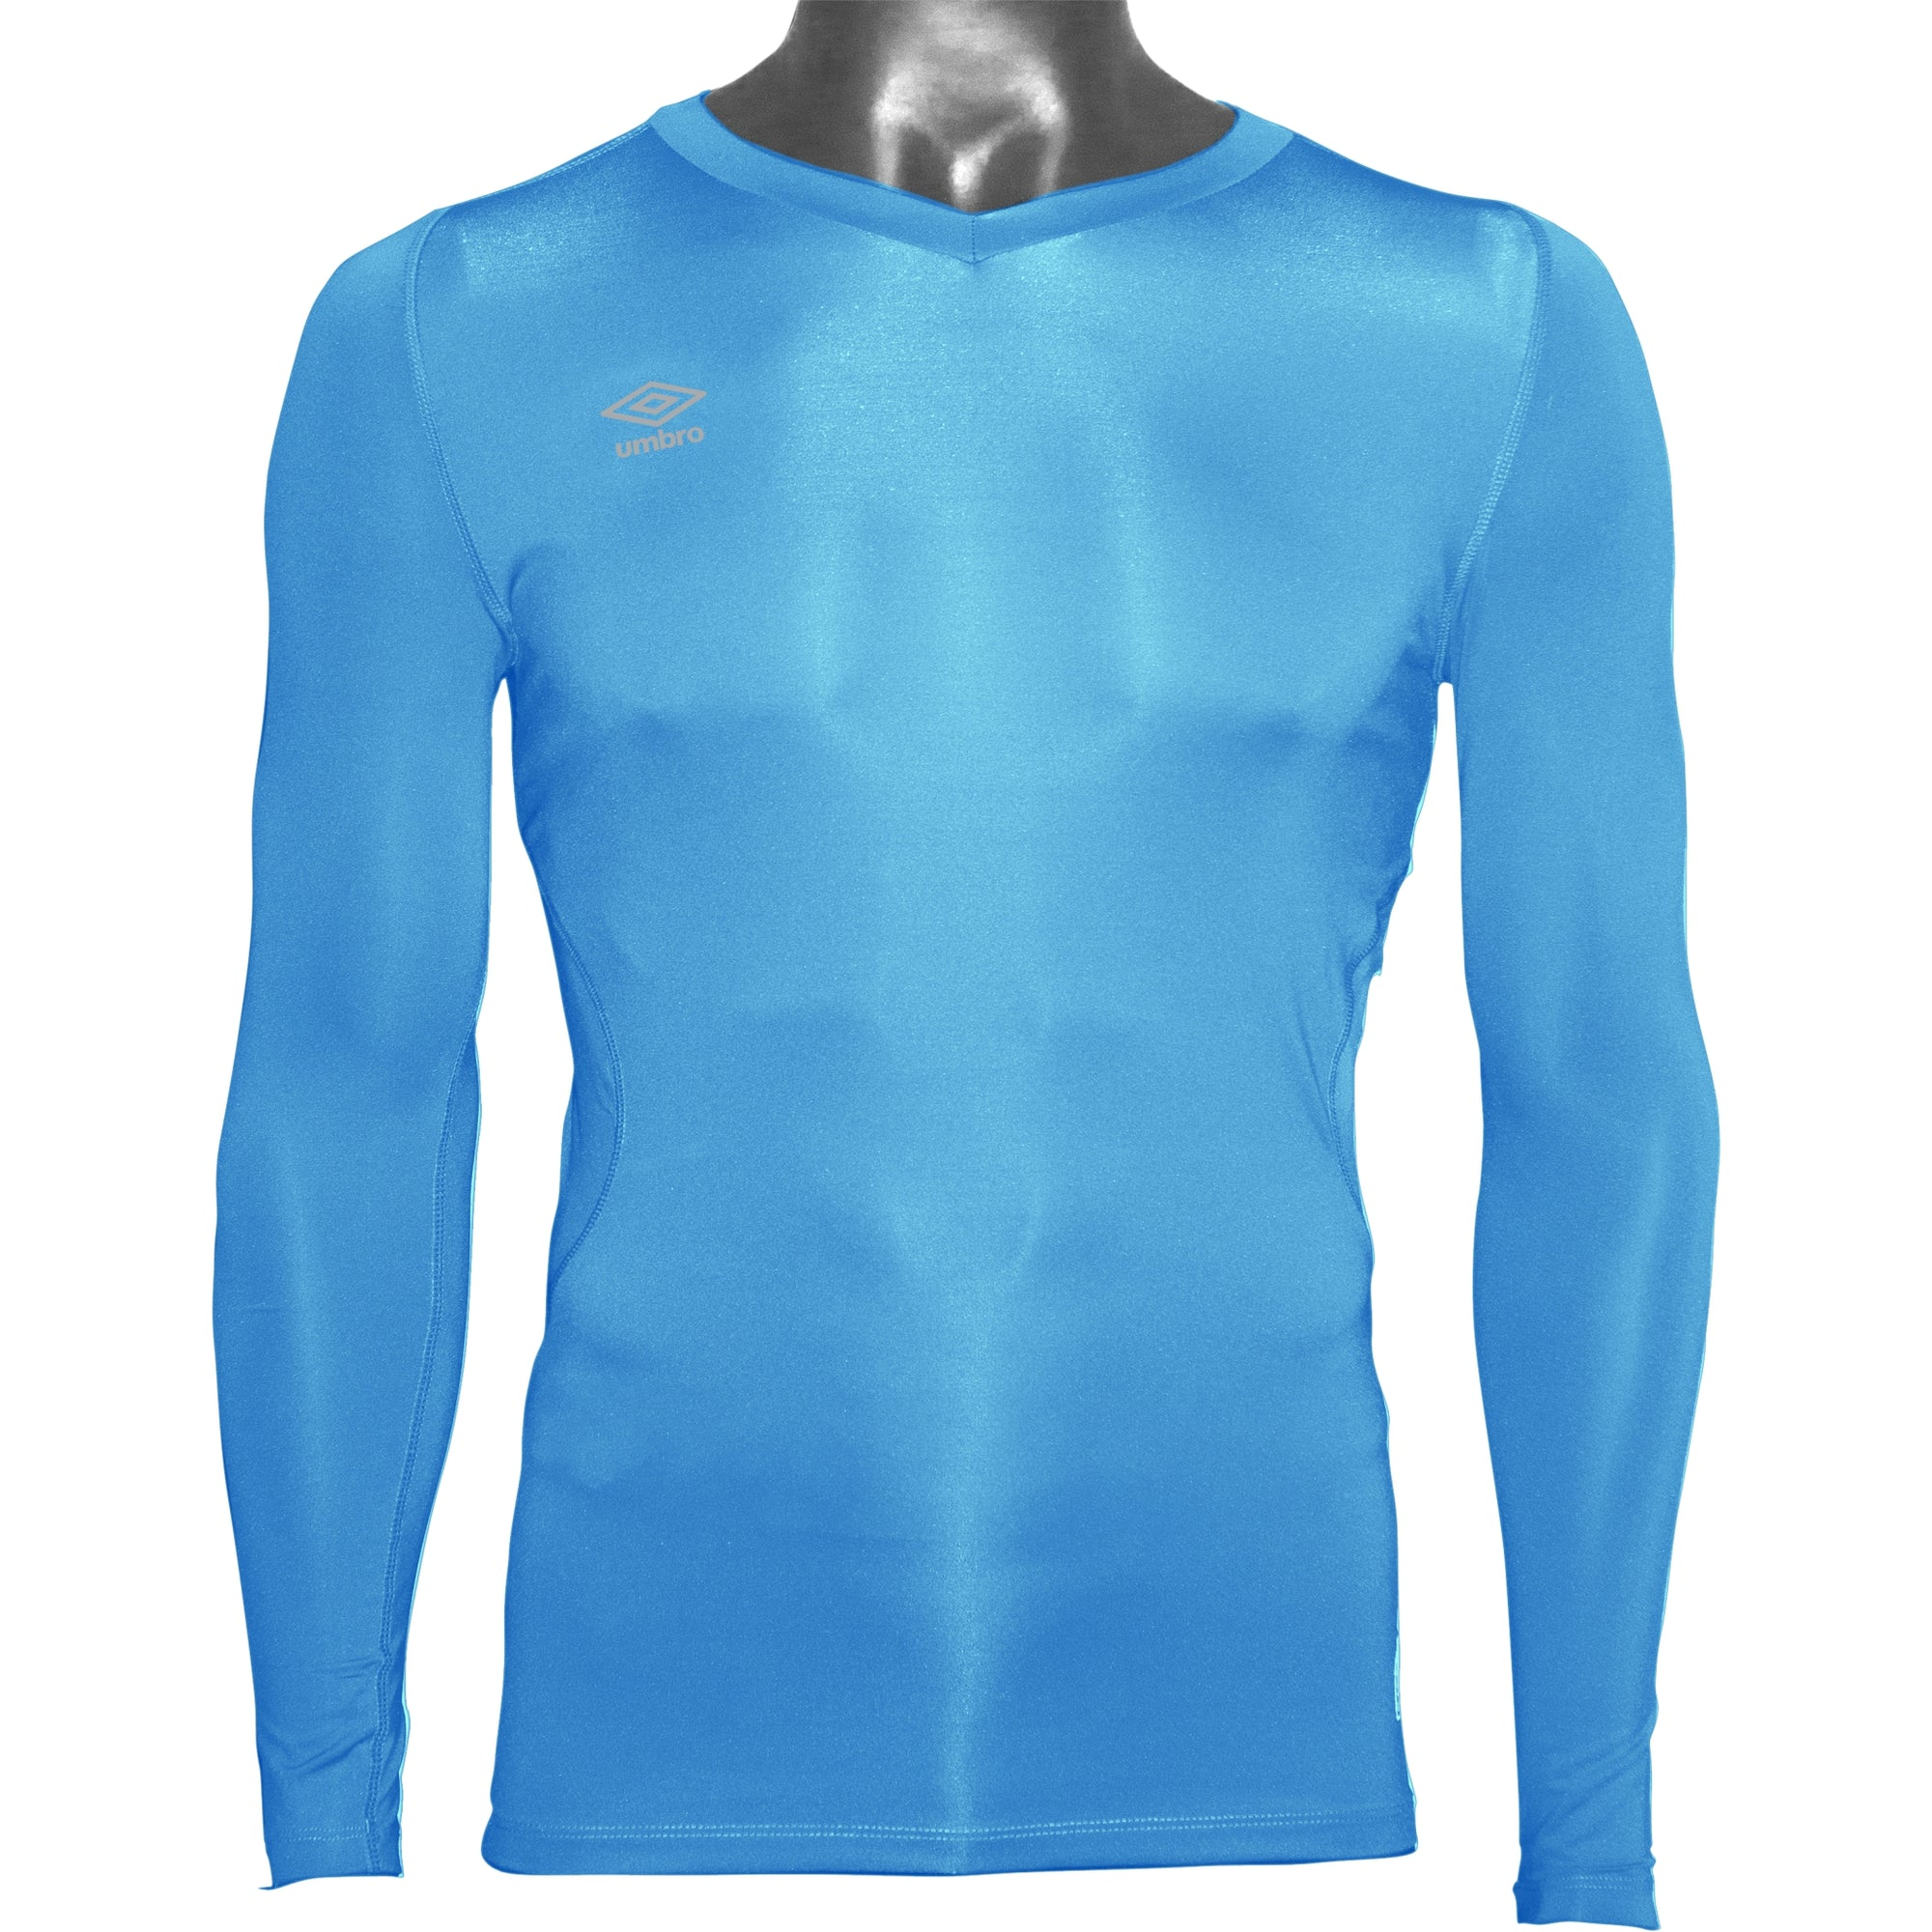 Umbro Elite V Neck baselayer in sky blue with reflective stacked diamond logo on right chest